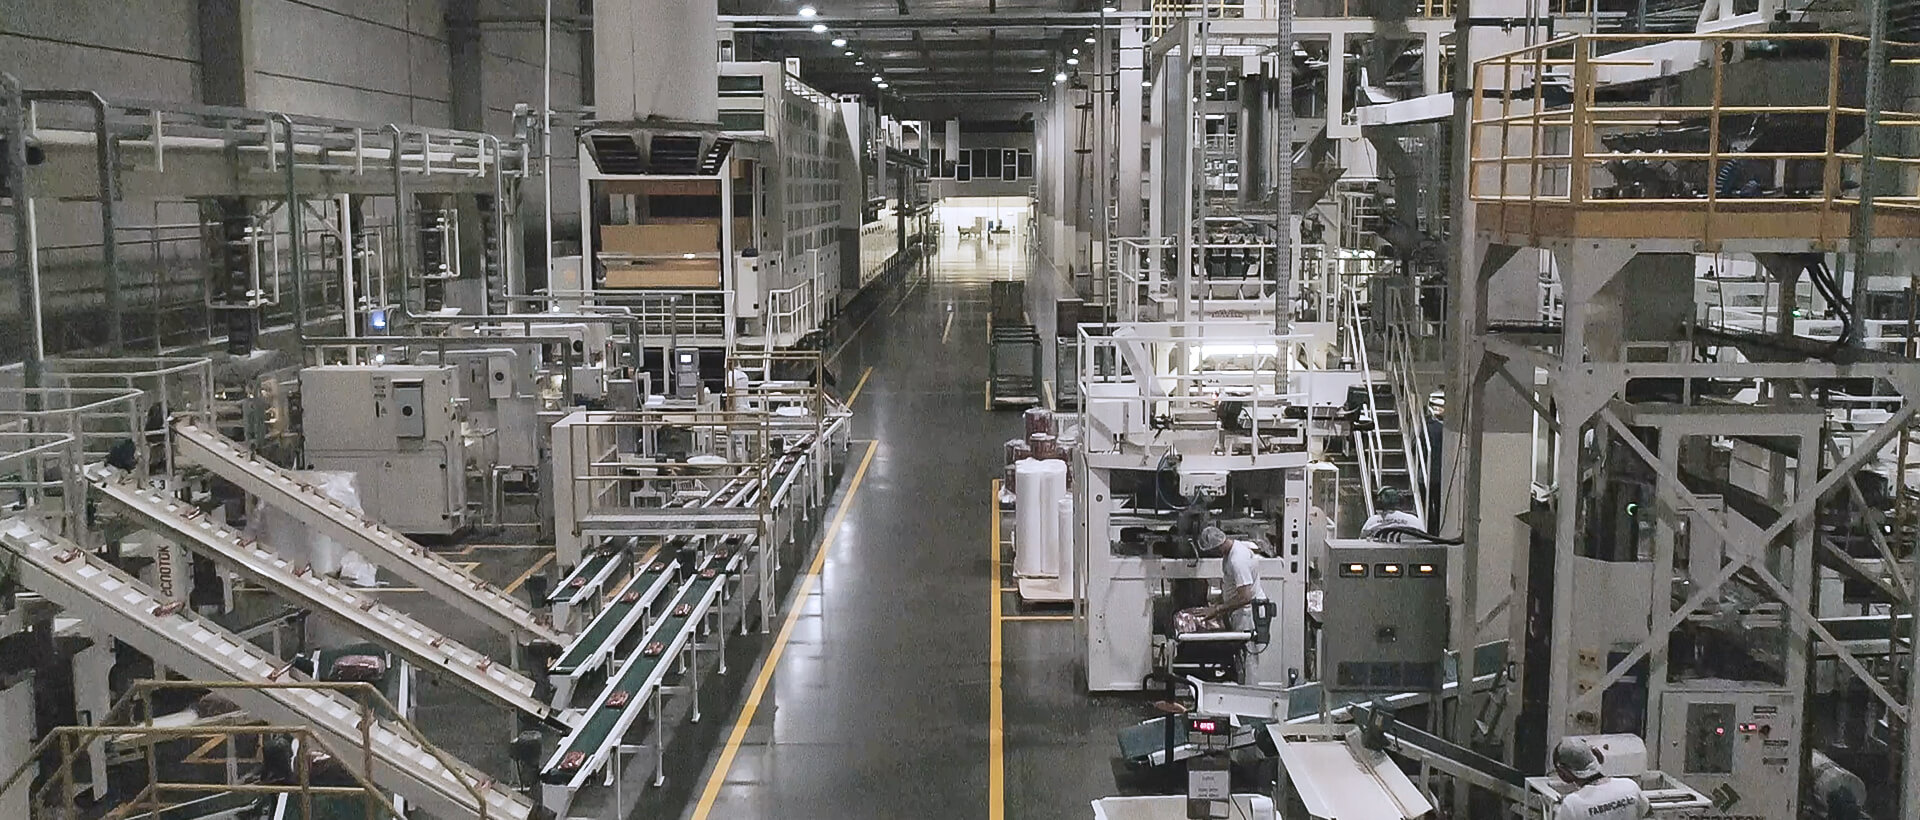 Ilustração Selmi has two modern manufacturing plants with state-of-the-art structures to offer the most innovative products for the Brazilian family. The plants are located in the cities of Sumaré (SP) and Rolândia (PR), with fully automated machines and equipment, from the selection of raw materials to the packaging process.